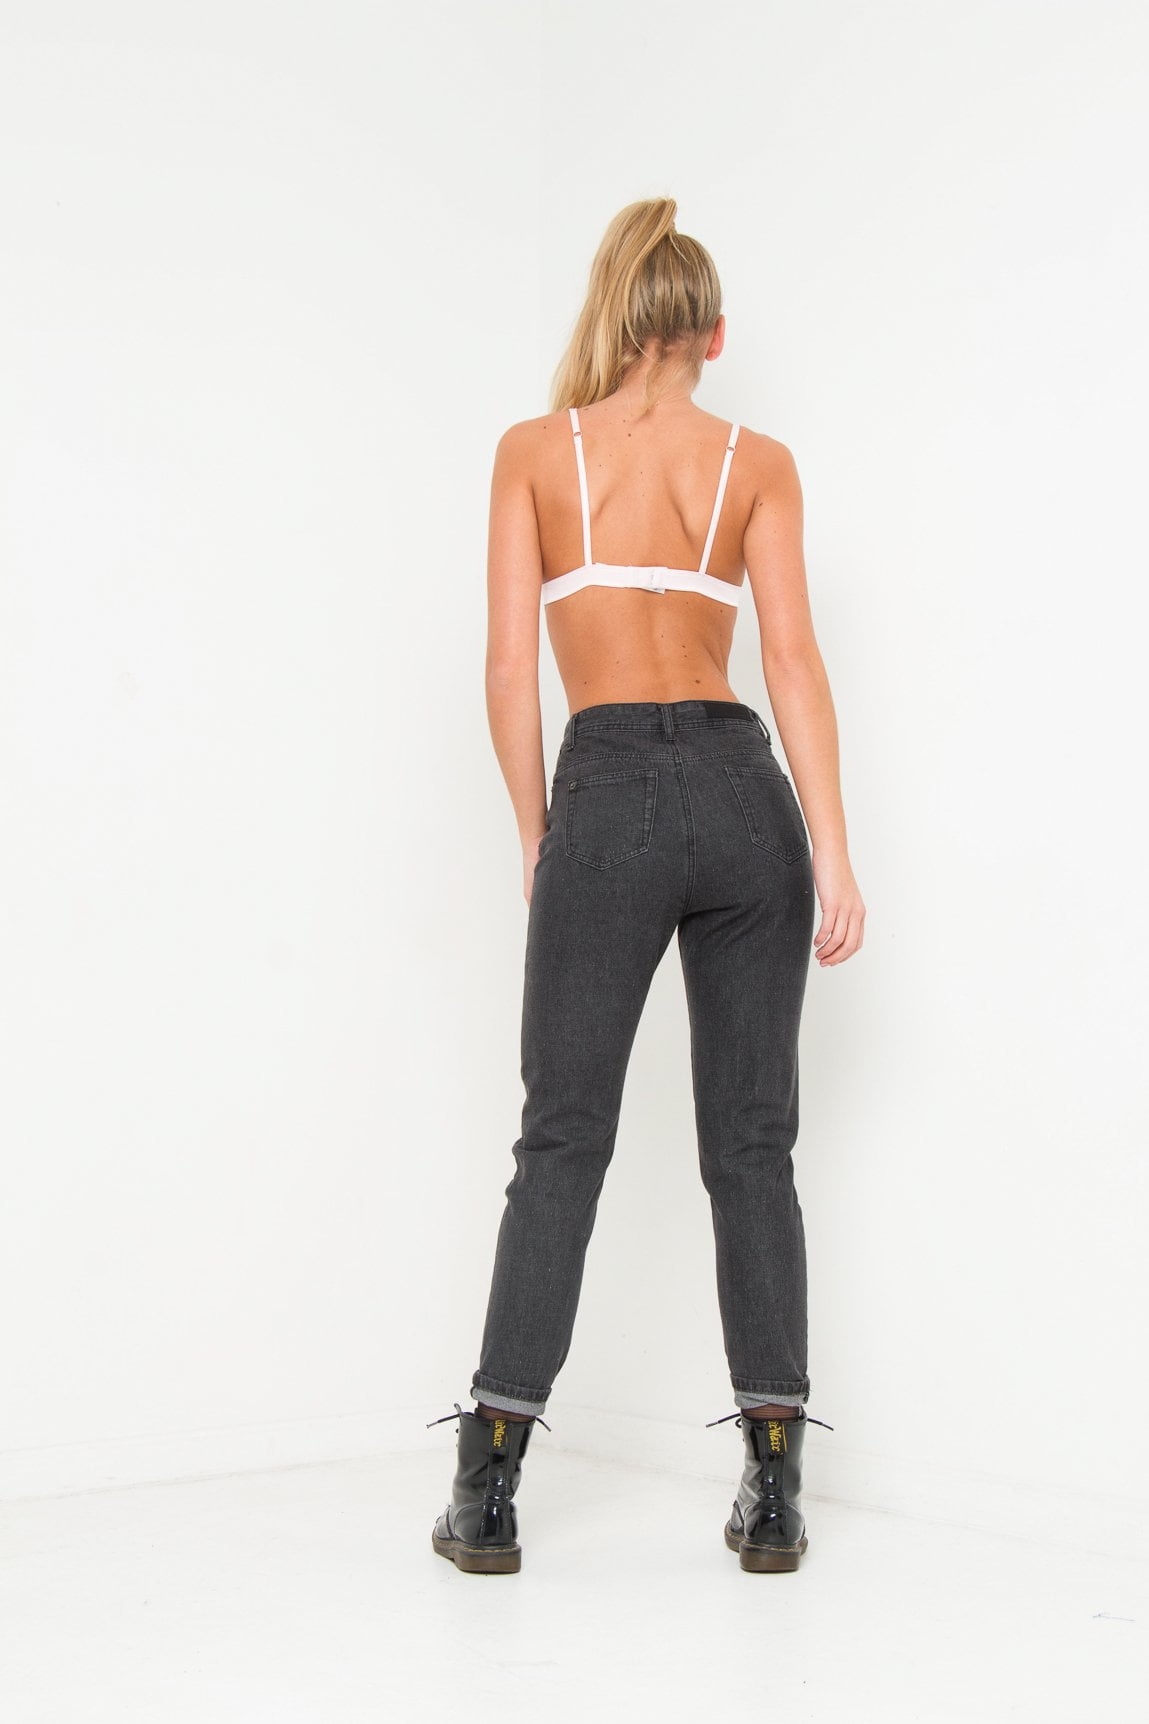 LAX High rise mom jean with lilly print in washed black